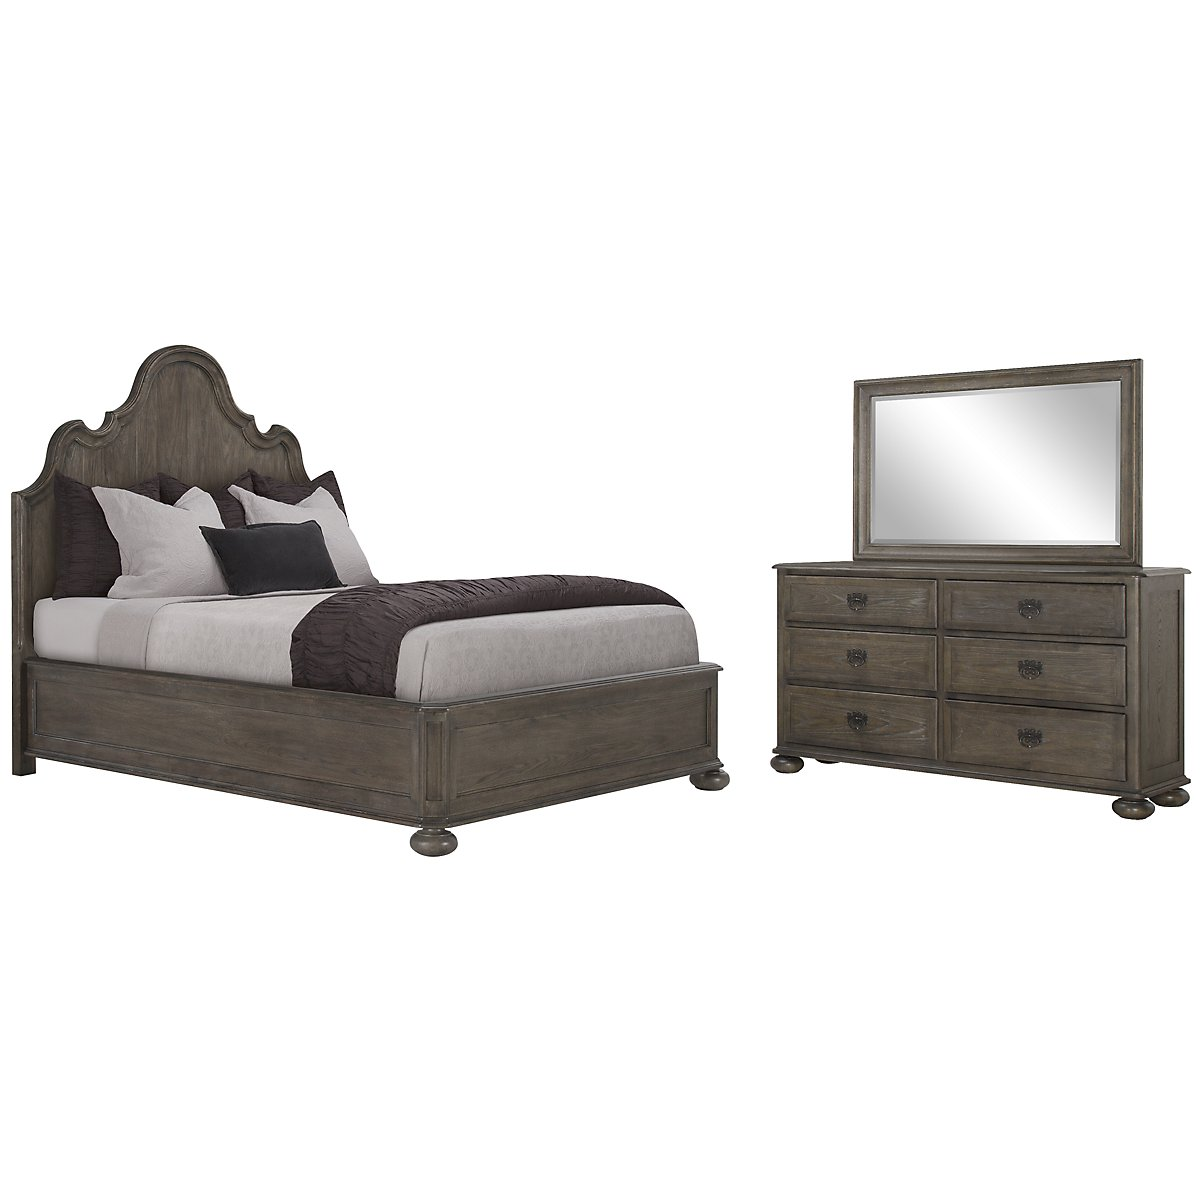 Belgian Oak Light Tone Wood Platform Bedroom